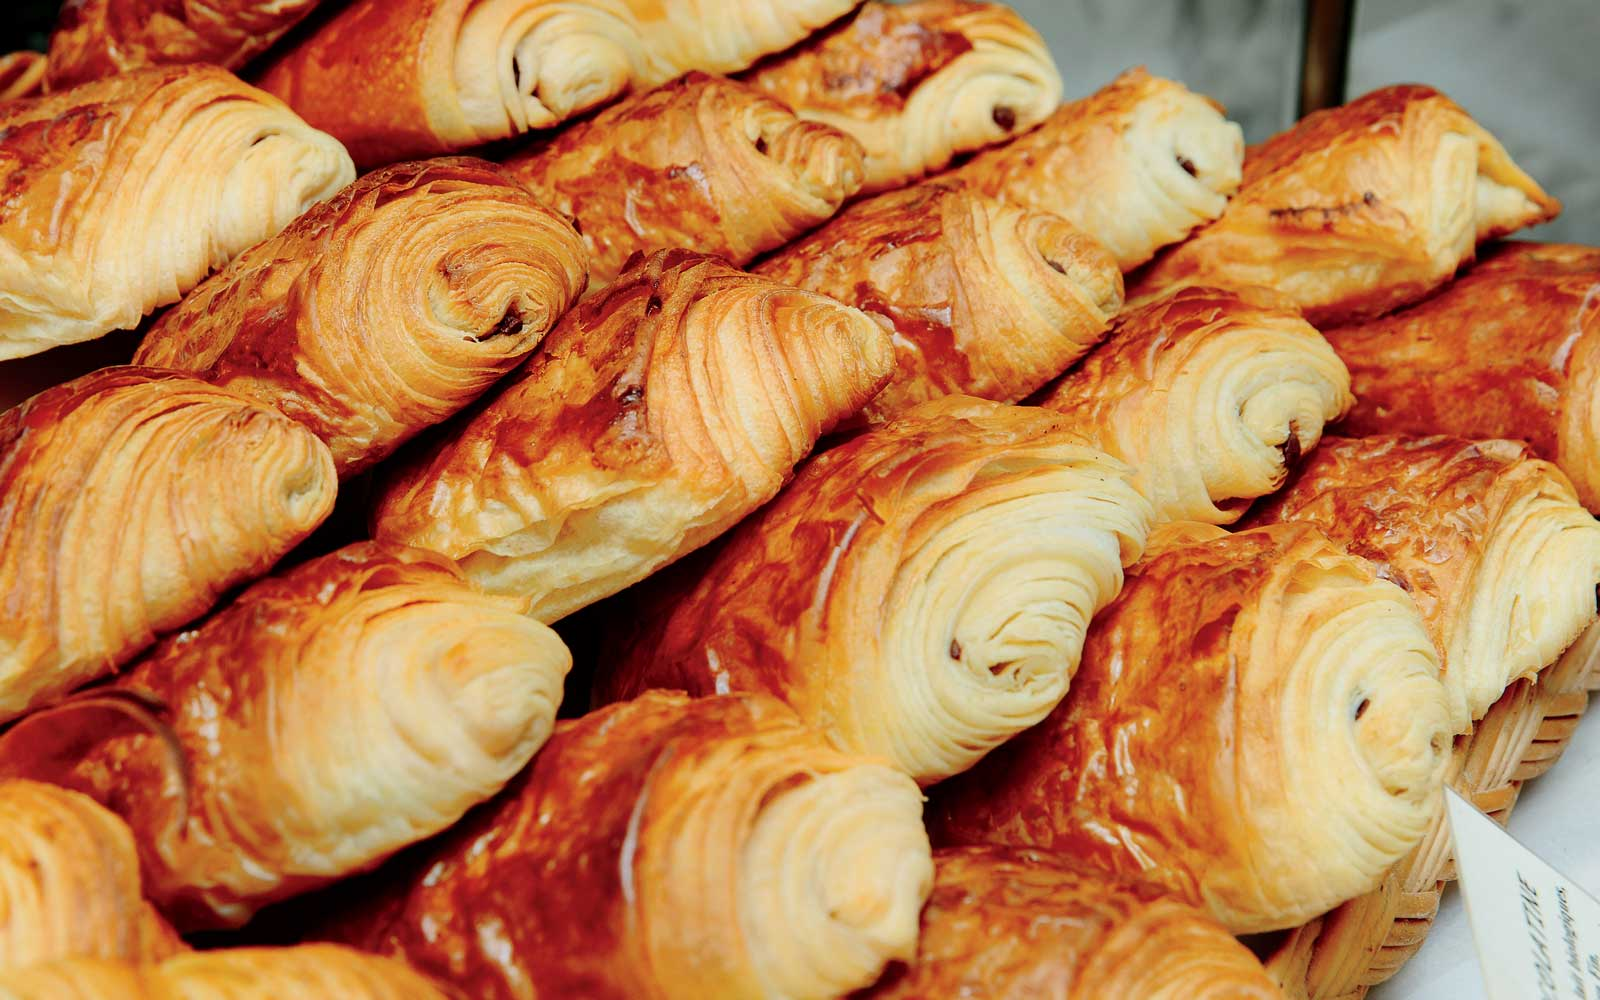 The Best Pastries in Paris, According to Yotam Ottolenghi